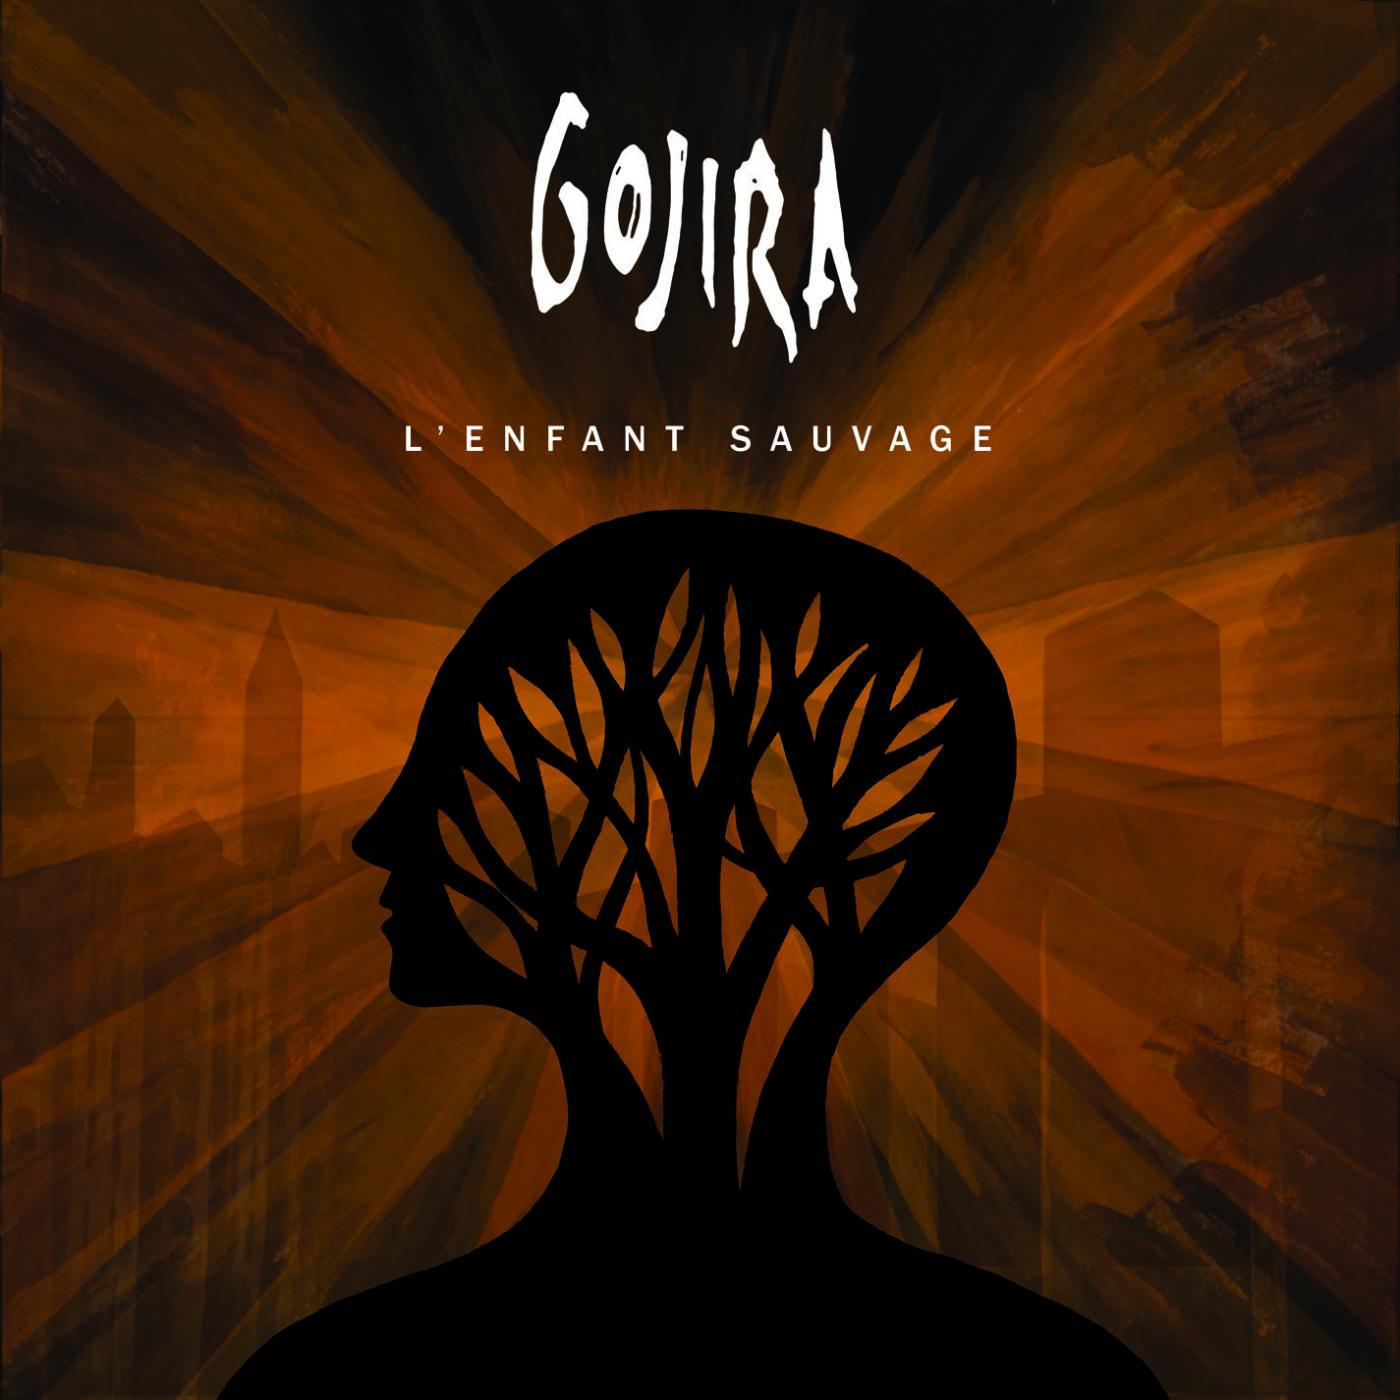 Gojira - L'Enfant Sauvage (guitar cover)  Gojira, L'Enfant Sauvage, death metal, guitar cover, видео